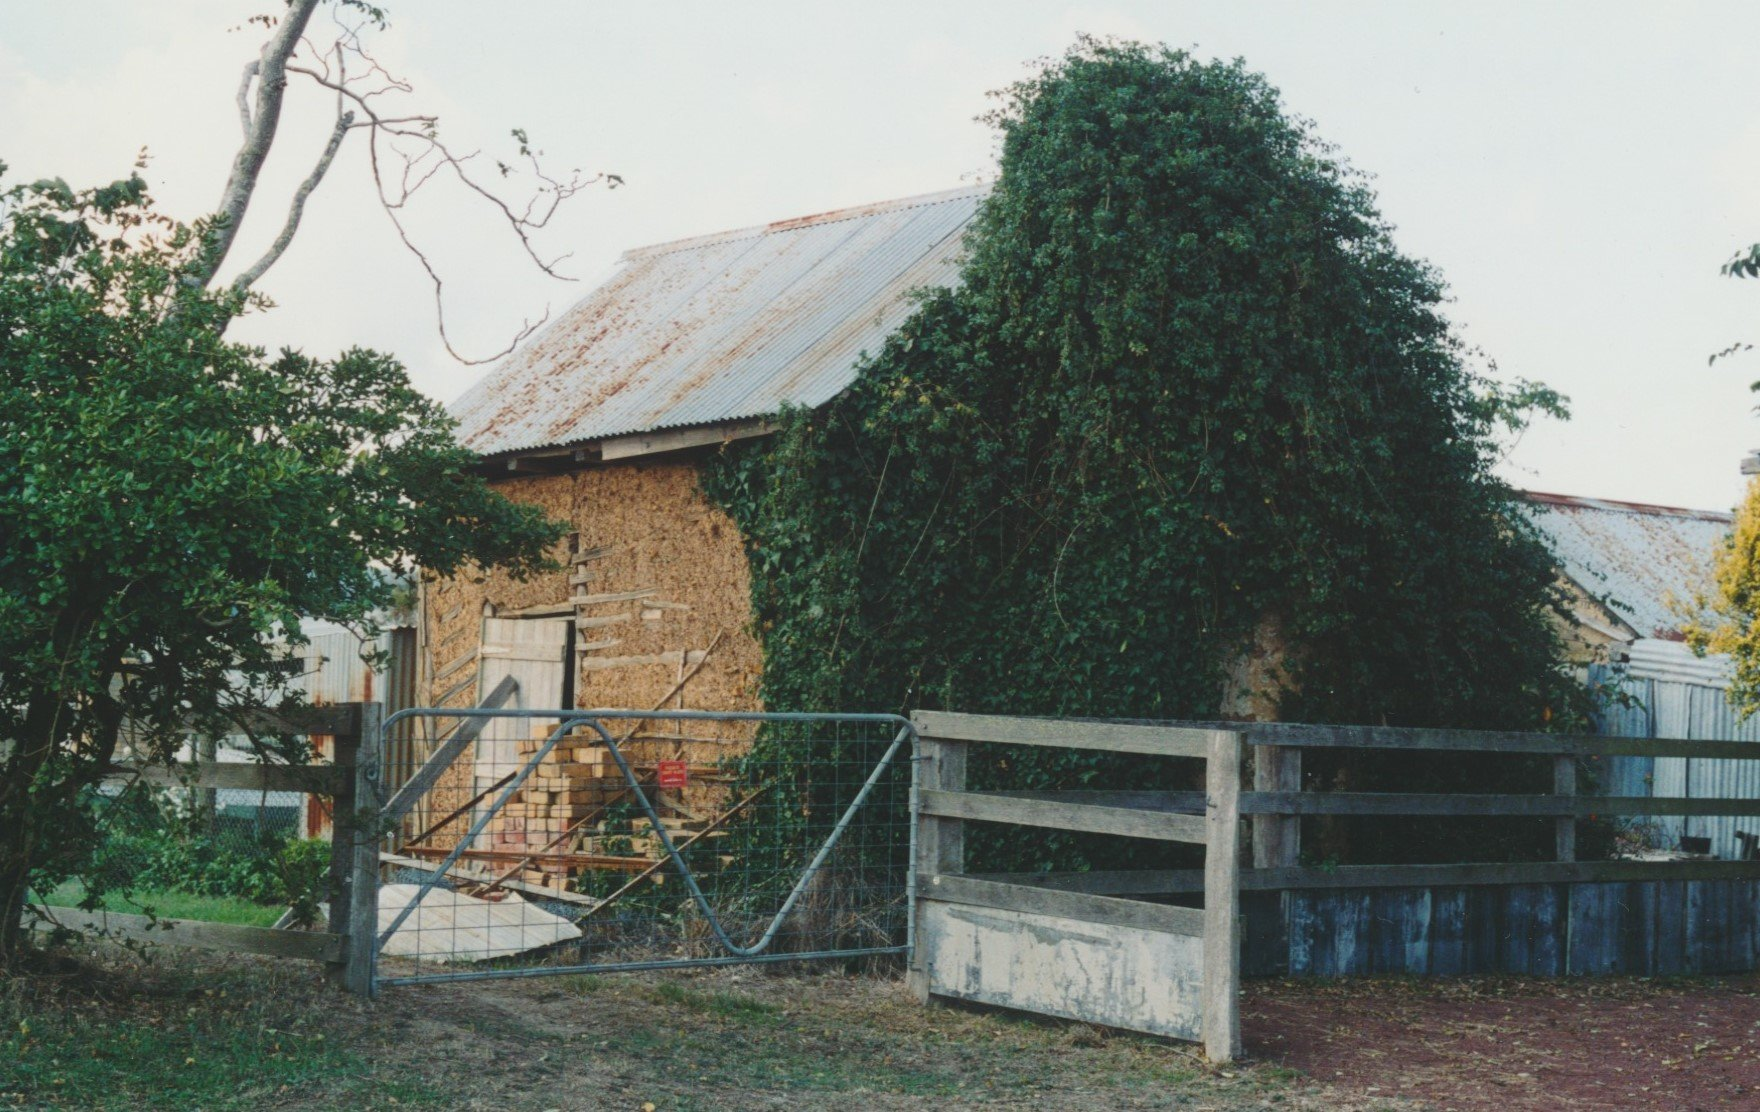 While taking his Shorthorn bull home from Mr. Healey's property last week-end, Mr. Les Apted was suddenly attacked by the bull and tossed in the air. Old wattle and daub hut and kitchen of the Healey family house.  Bruce G. Draper, 2003